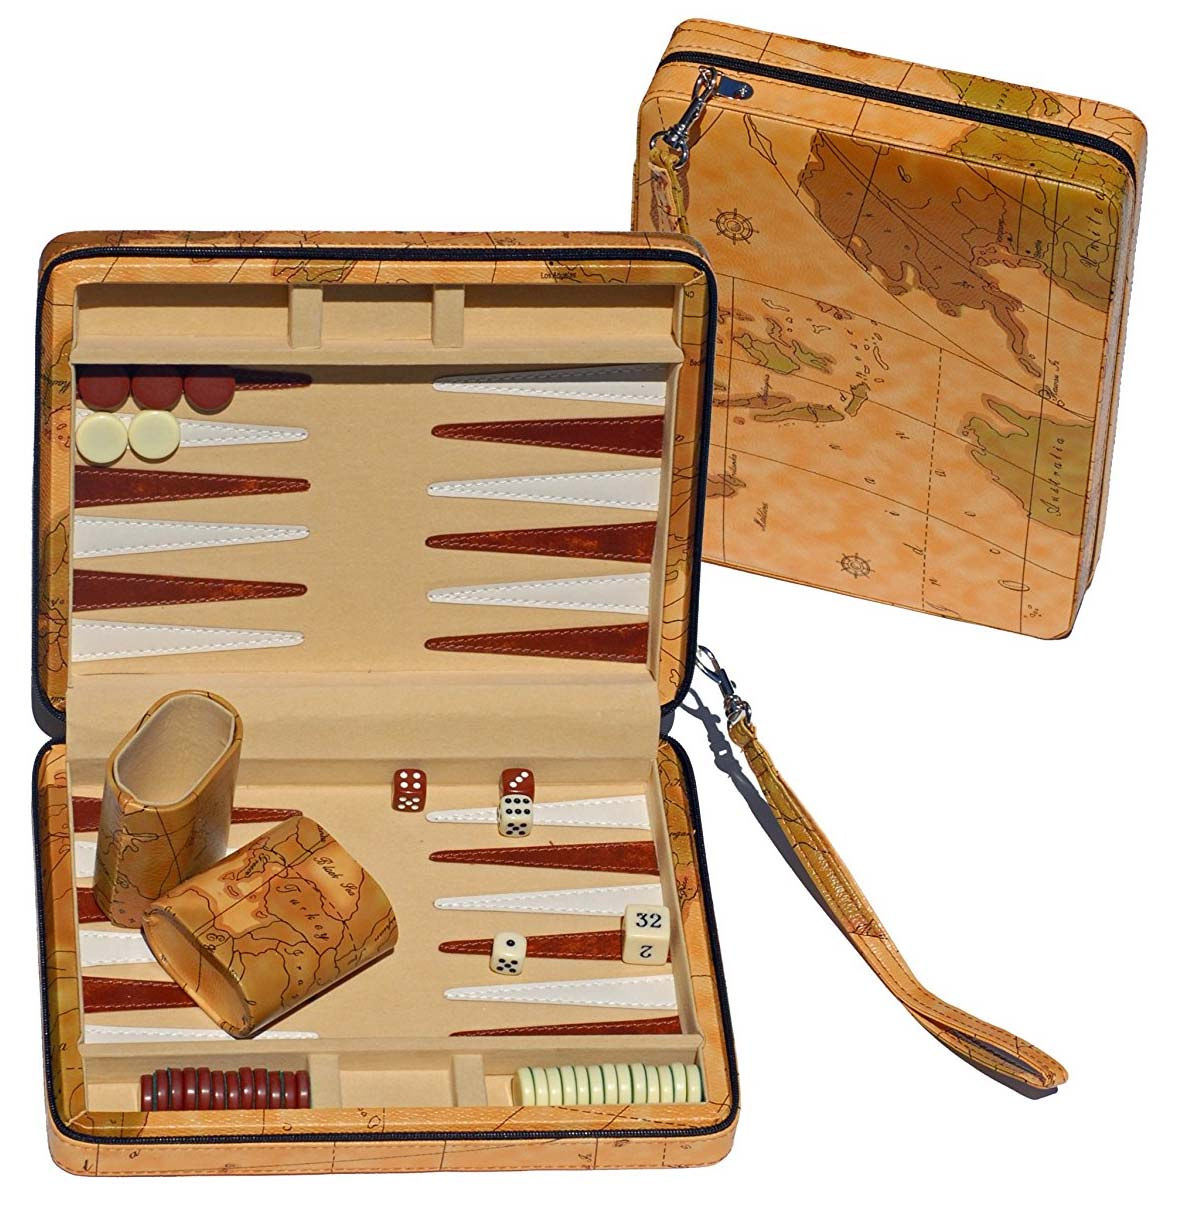 Our much loved  travel backgammon board  - which was a gift to us from dear friends. Such a good present for board game and travel loving people!